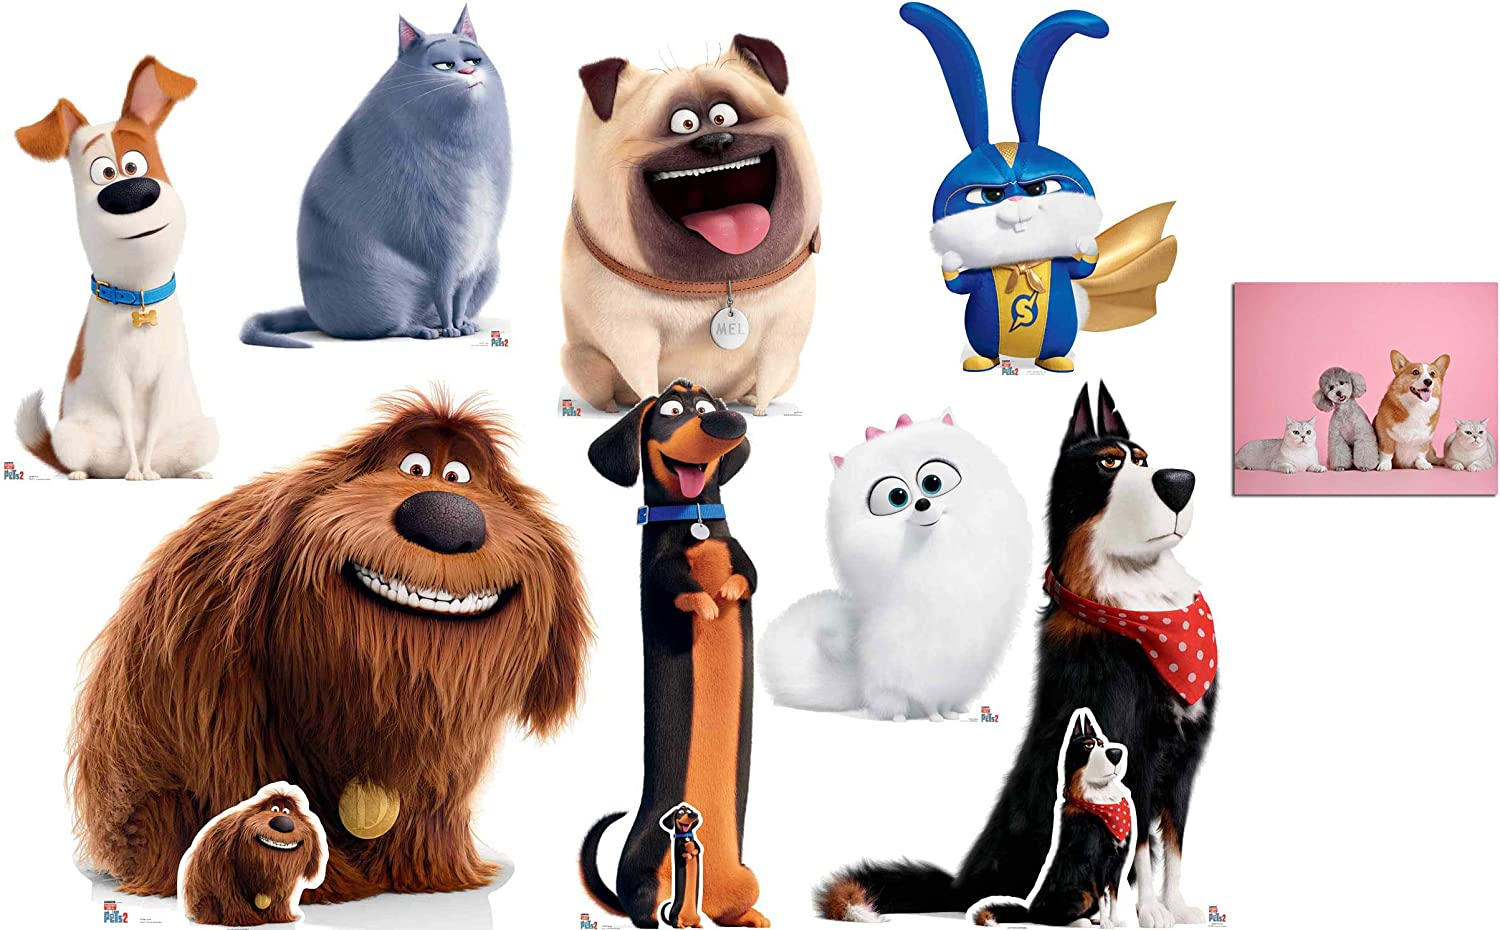 Amazon Com The Secret Life Of Pets 2 Official Cardboard Cutout Standup Collection Set Of 8 Fan Pack Includes Free Mini Cutouts For Buddy Rooster And Duke And 8x10 Photo Home Kitchen